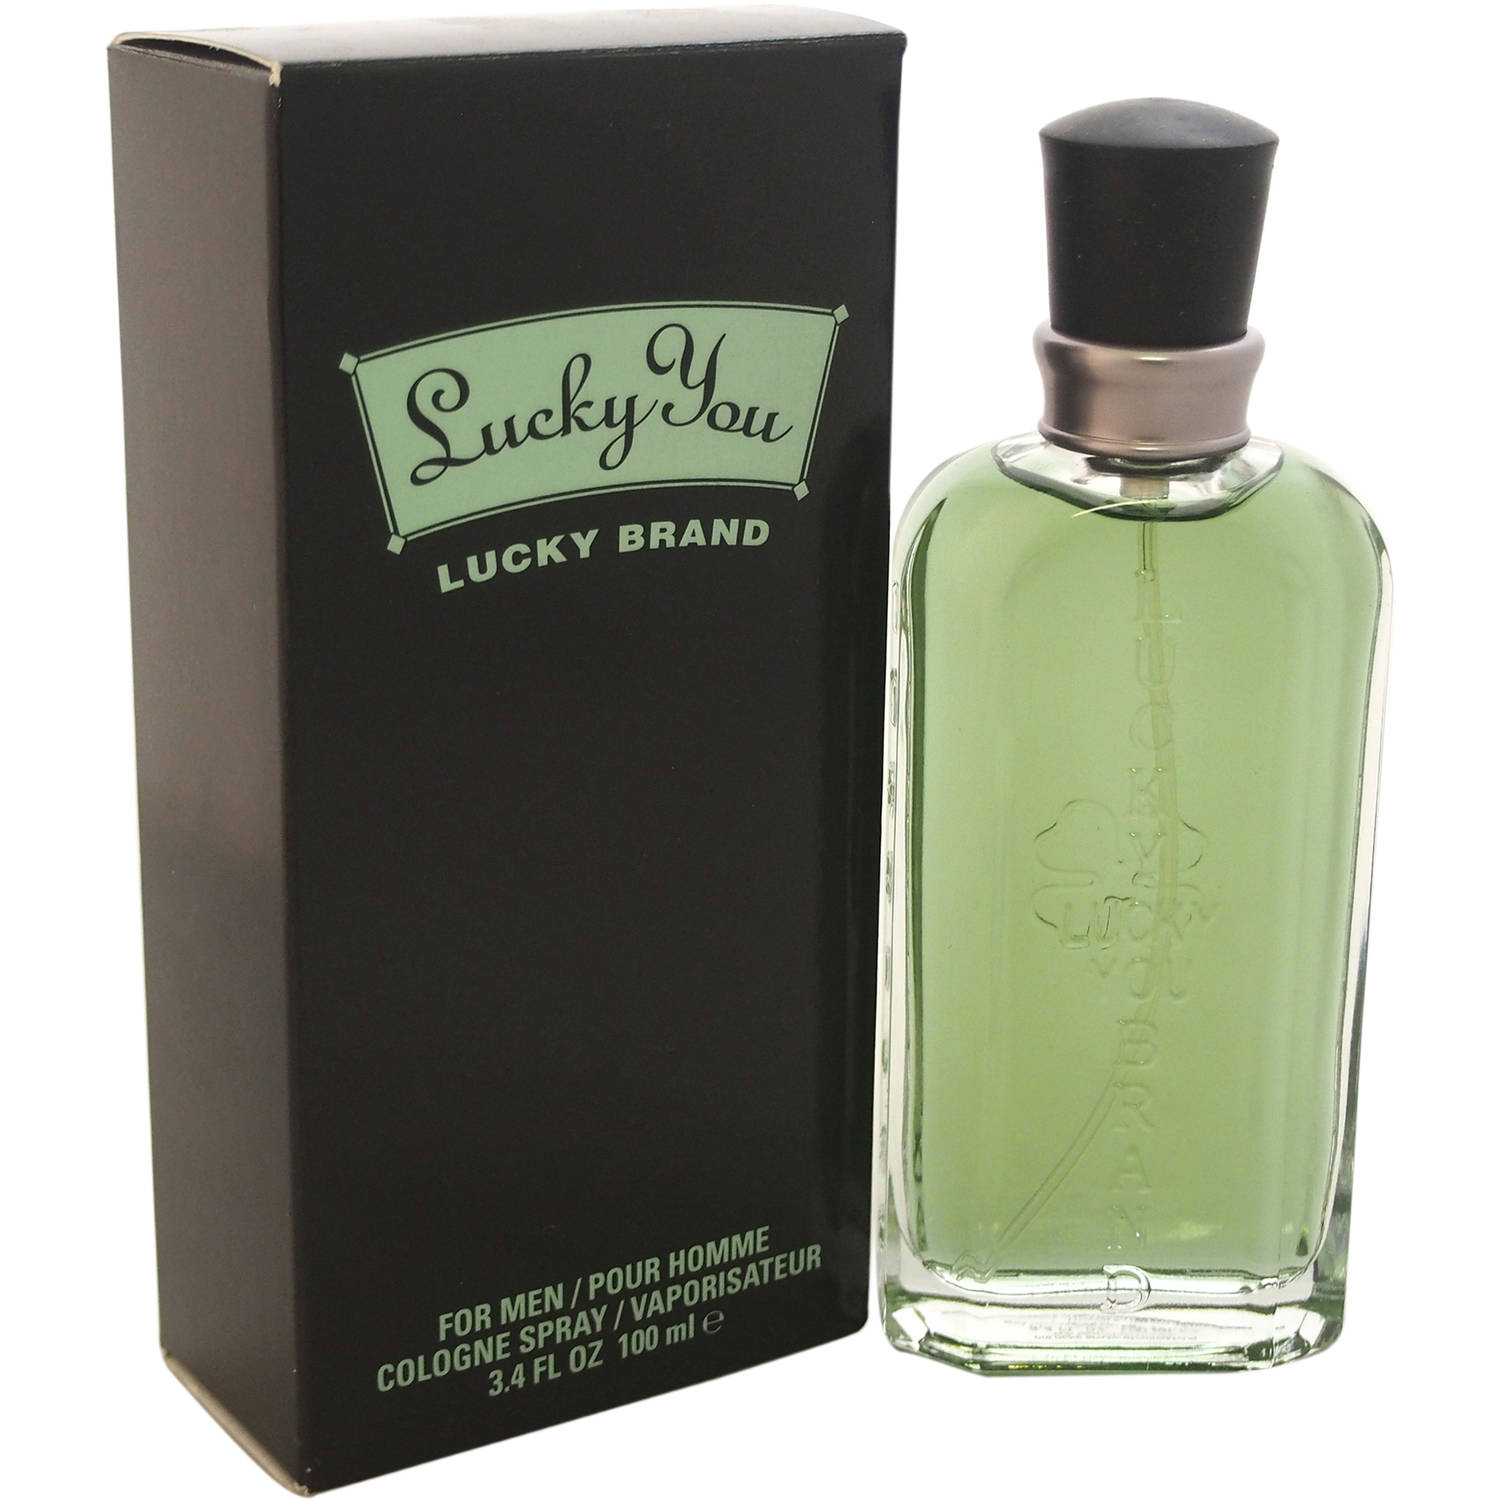 Liz Claiborne Lucky You Eau de Cologne for Men Spray, 3.4 oz